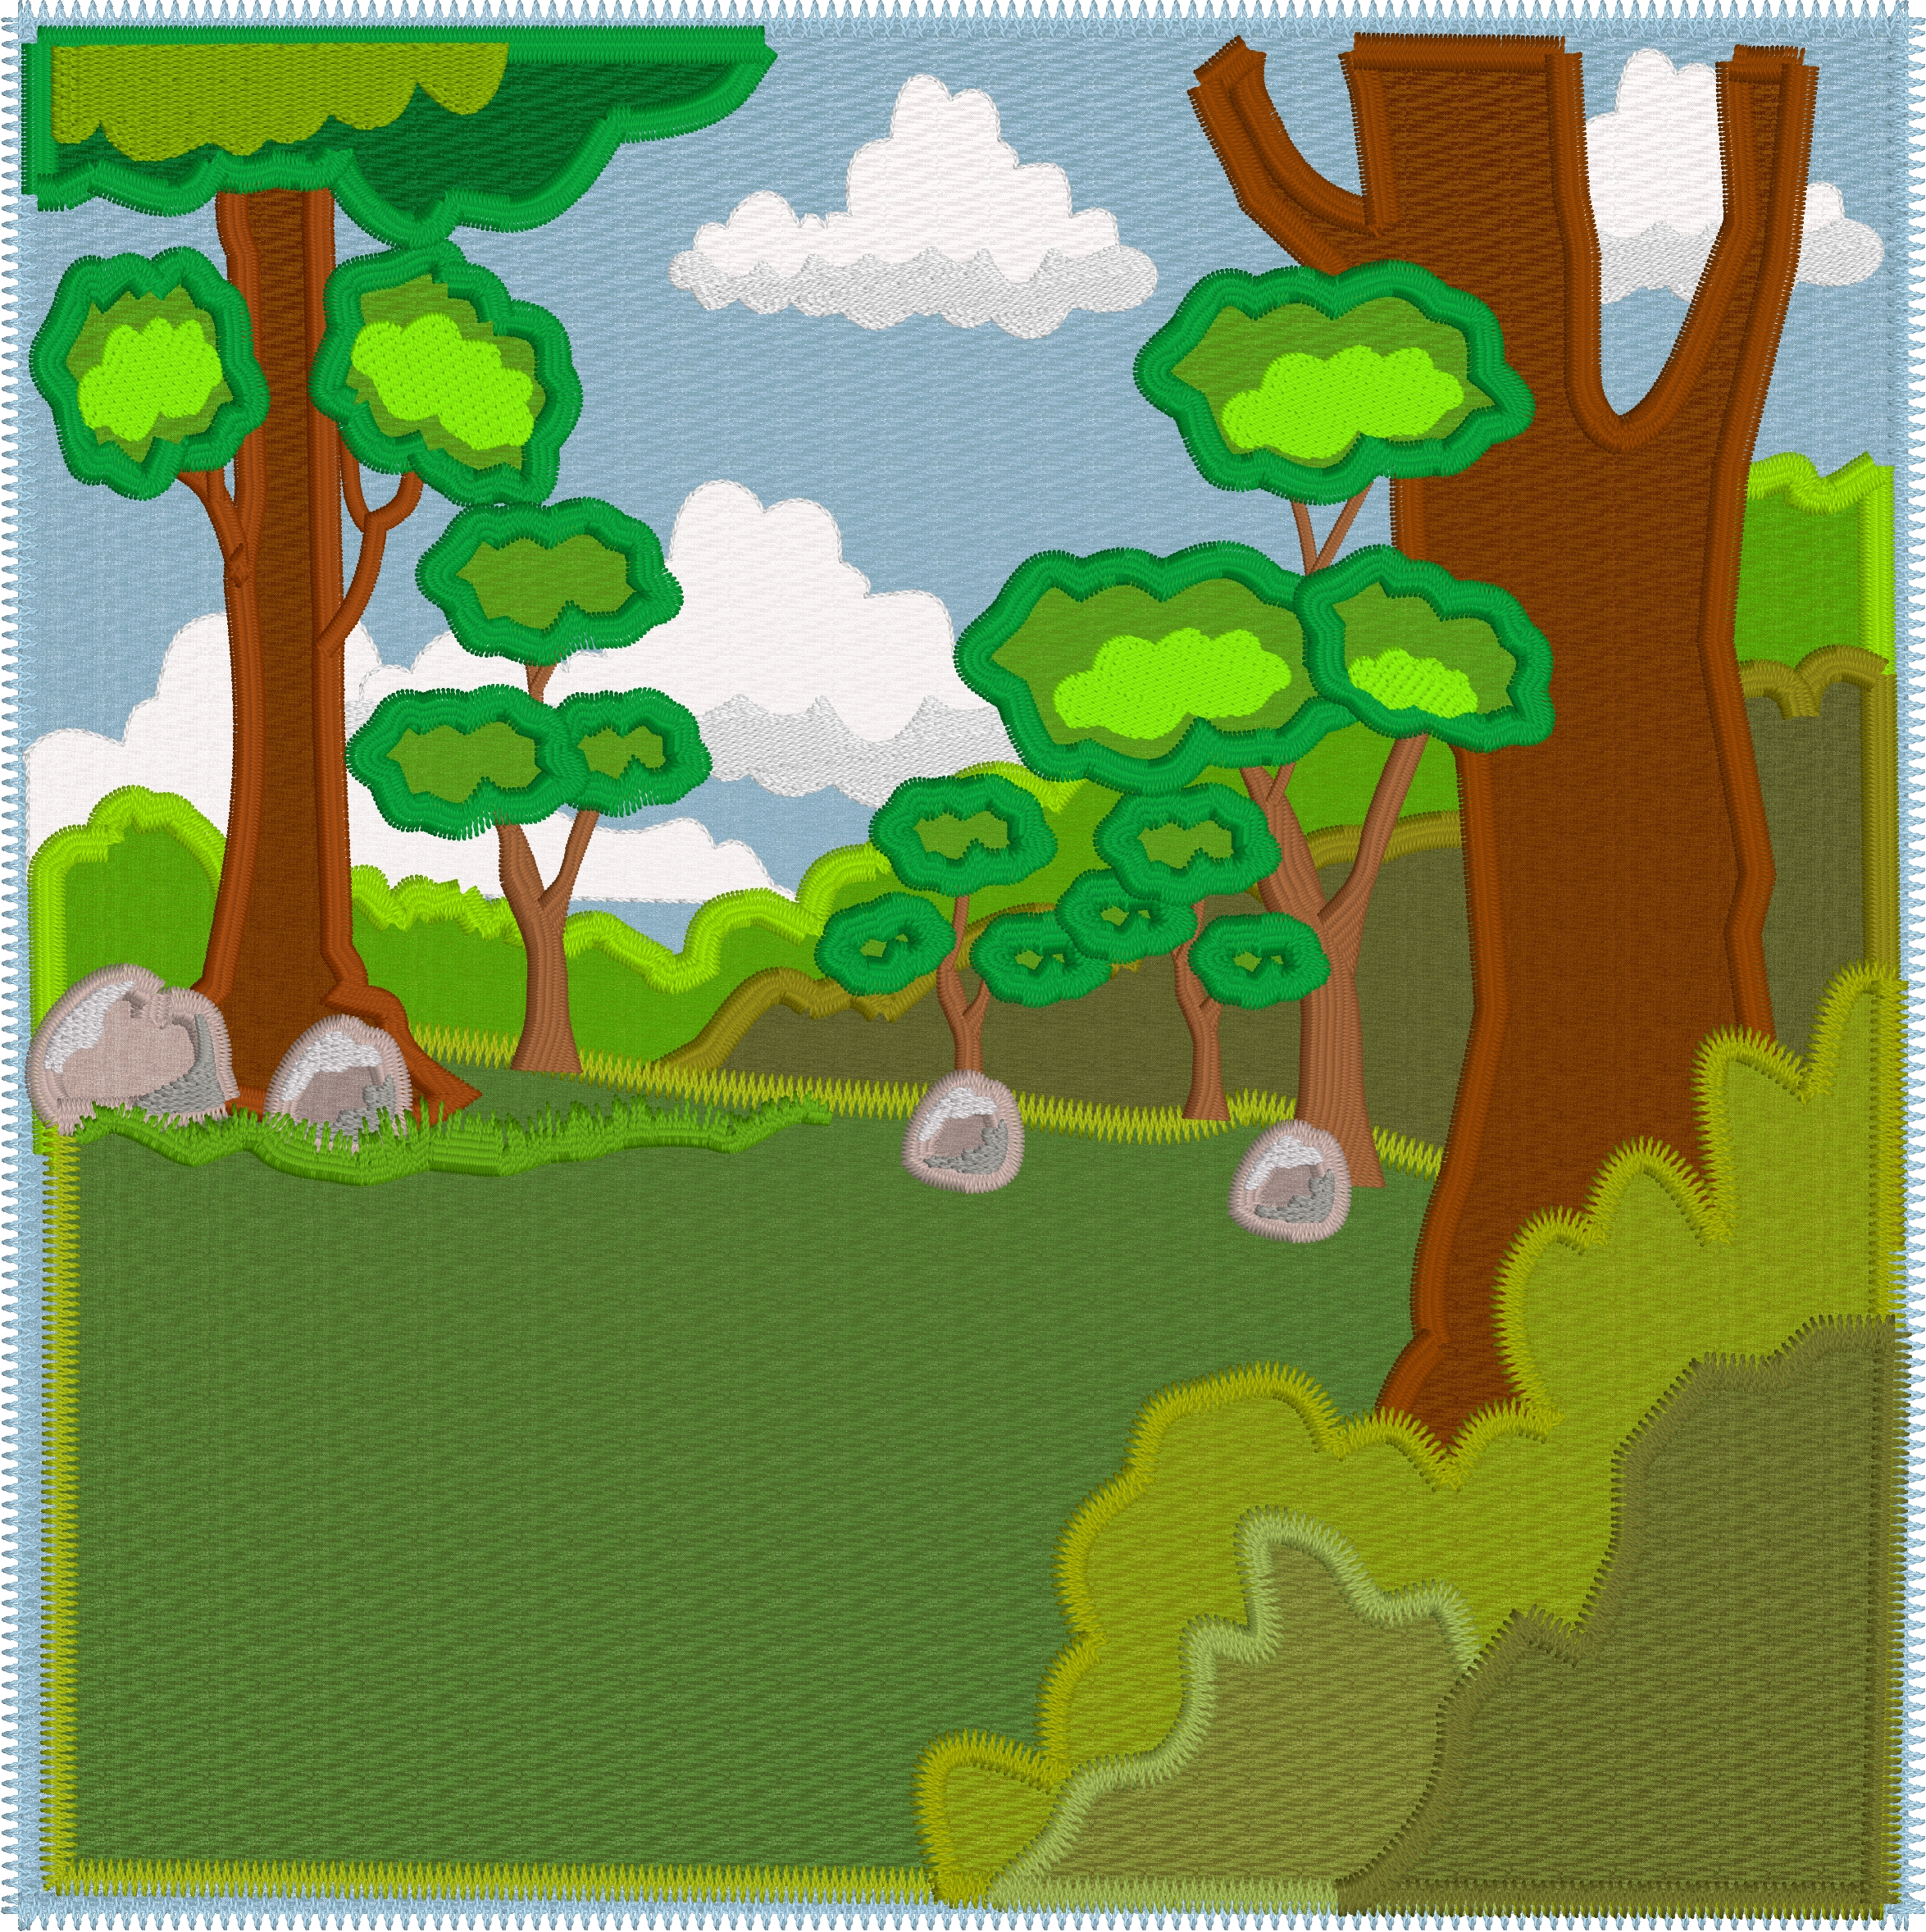 In the woods - 8x8 quiet book page - Including SVG files